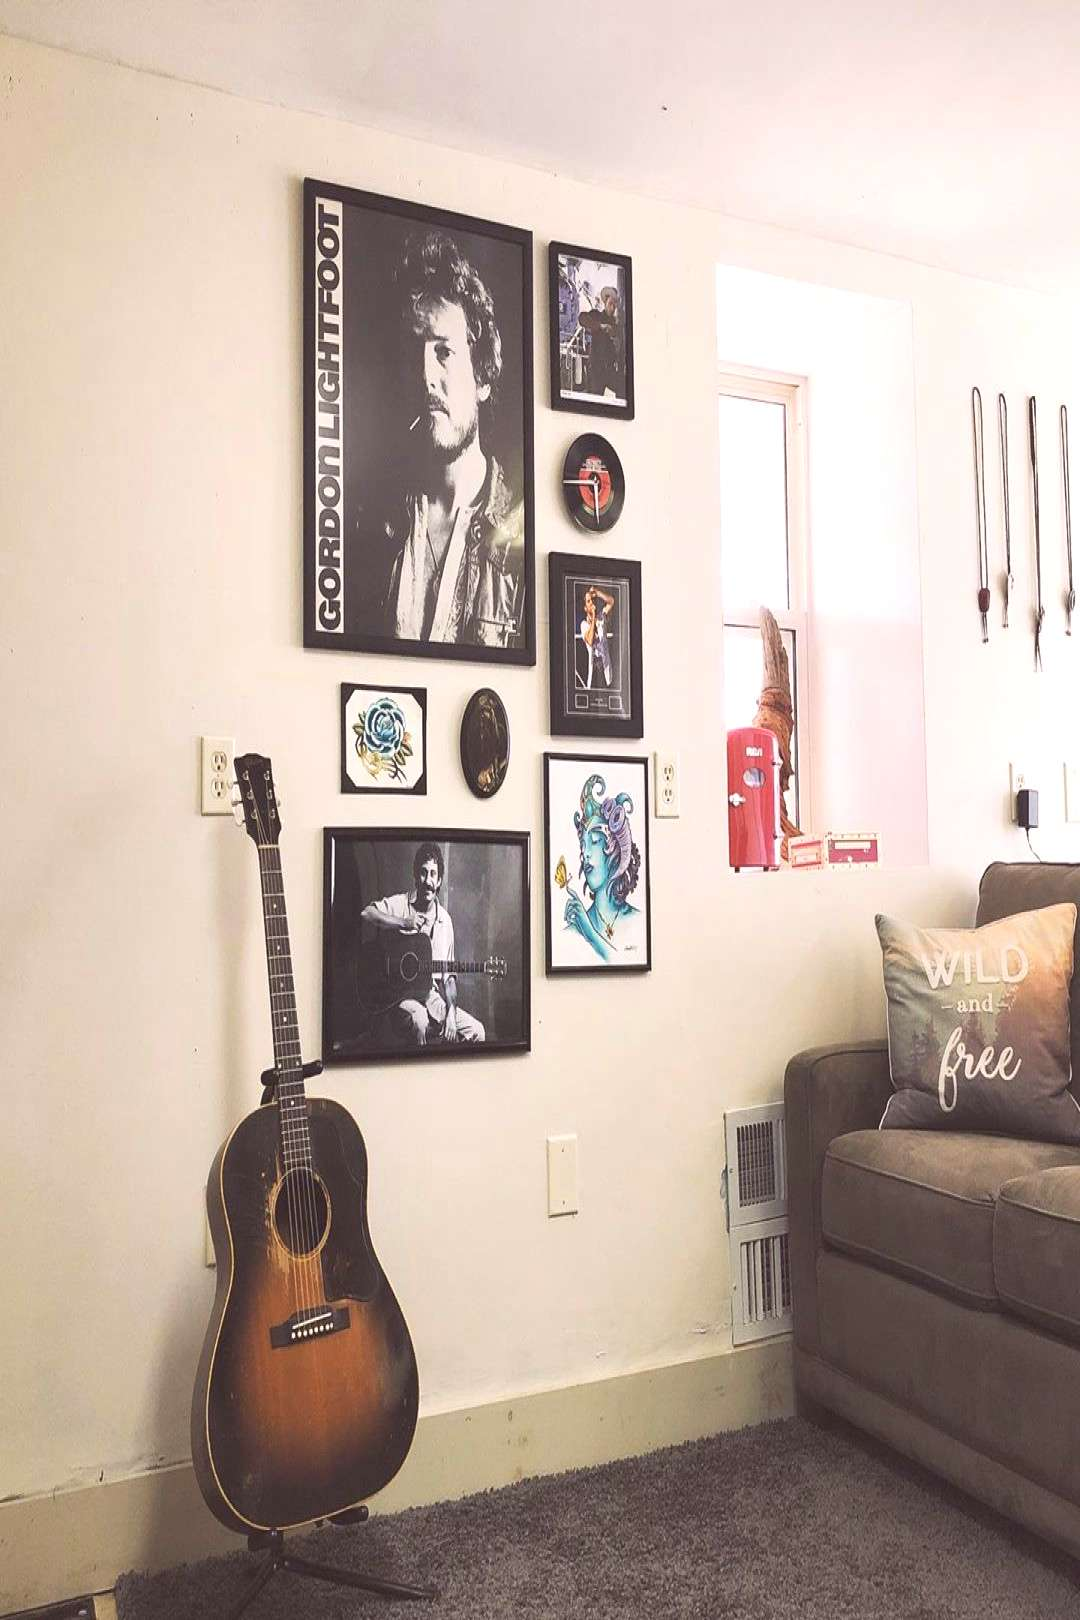 The Dog House is really starting to feel like home! All thanks to